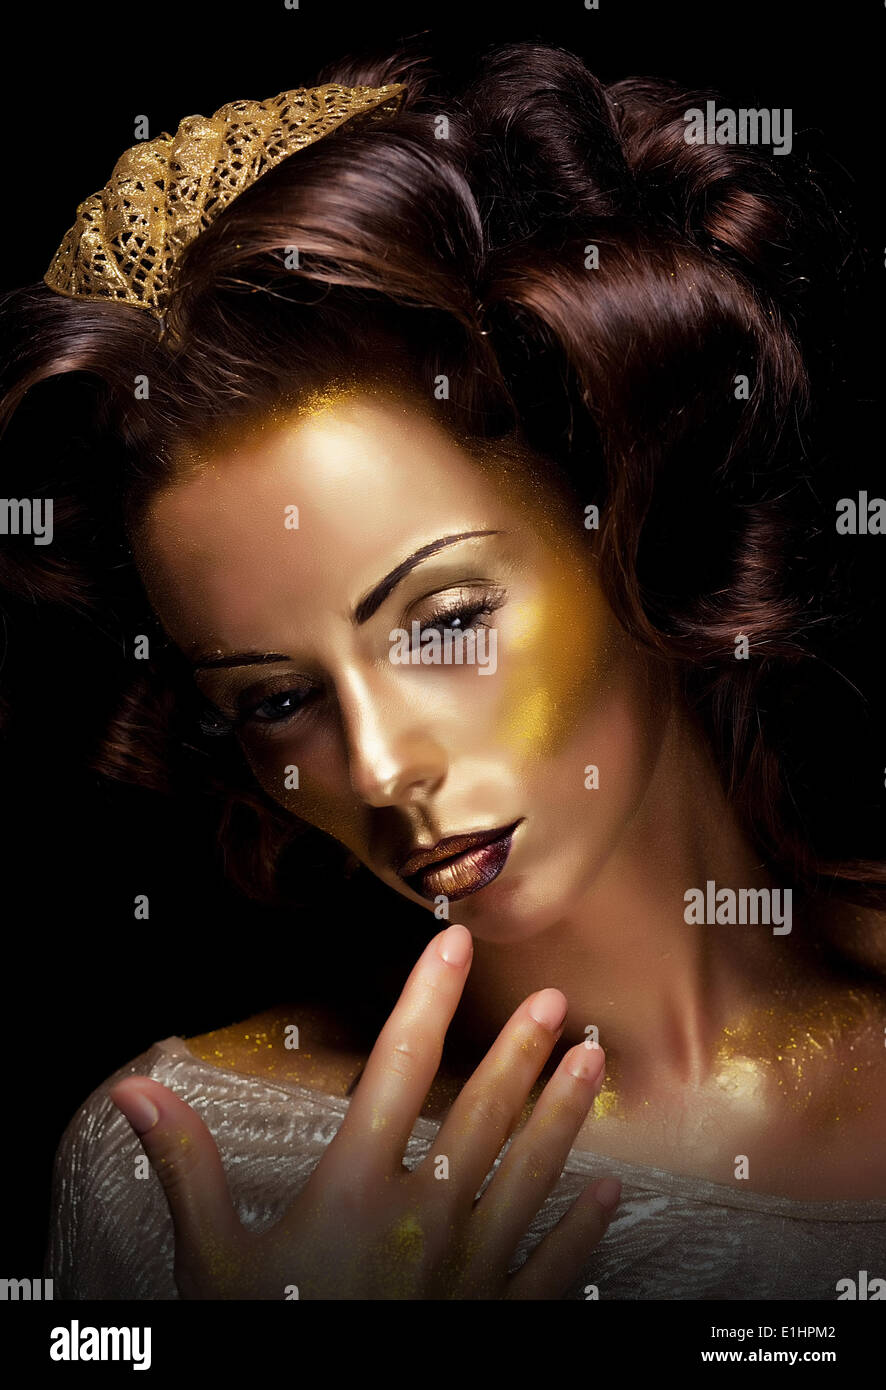 La peinture. La fantaisie. Glamour. Creative gold make-up, soins de beauté visage et fashion style Photo Stock